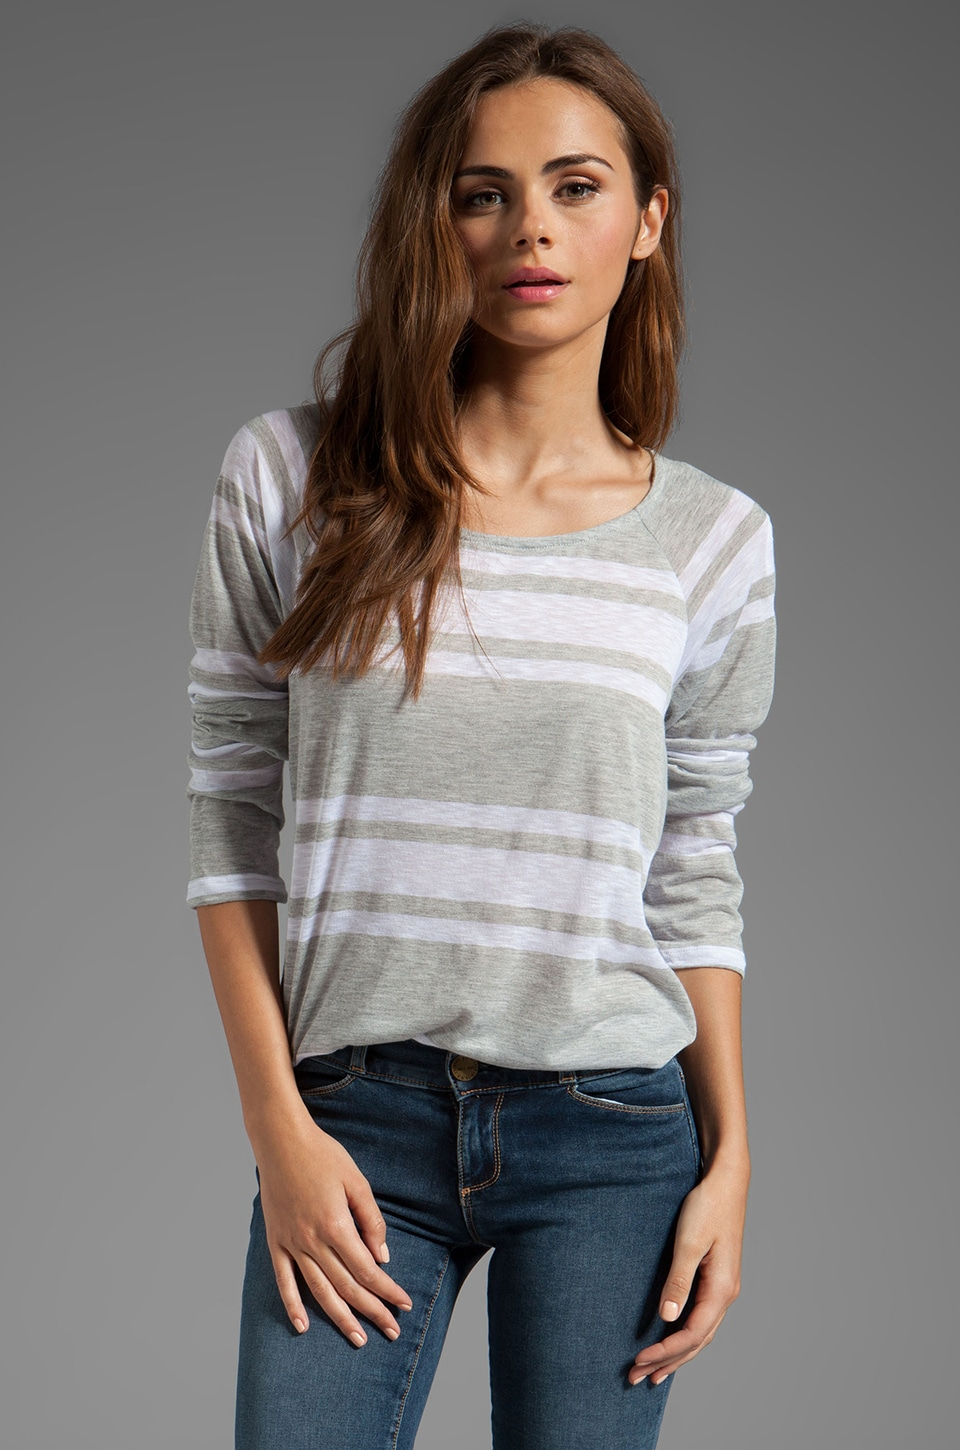 Splendid Stripe Long Sleeve Top in White